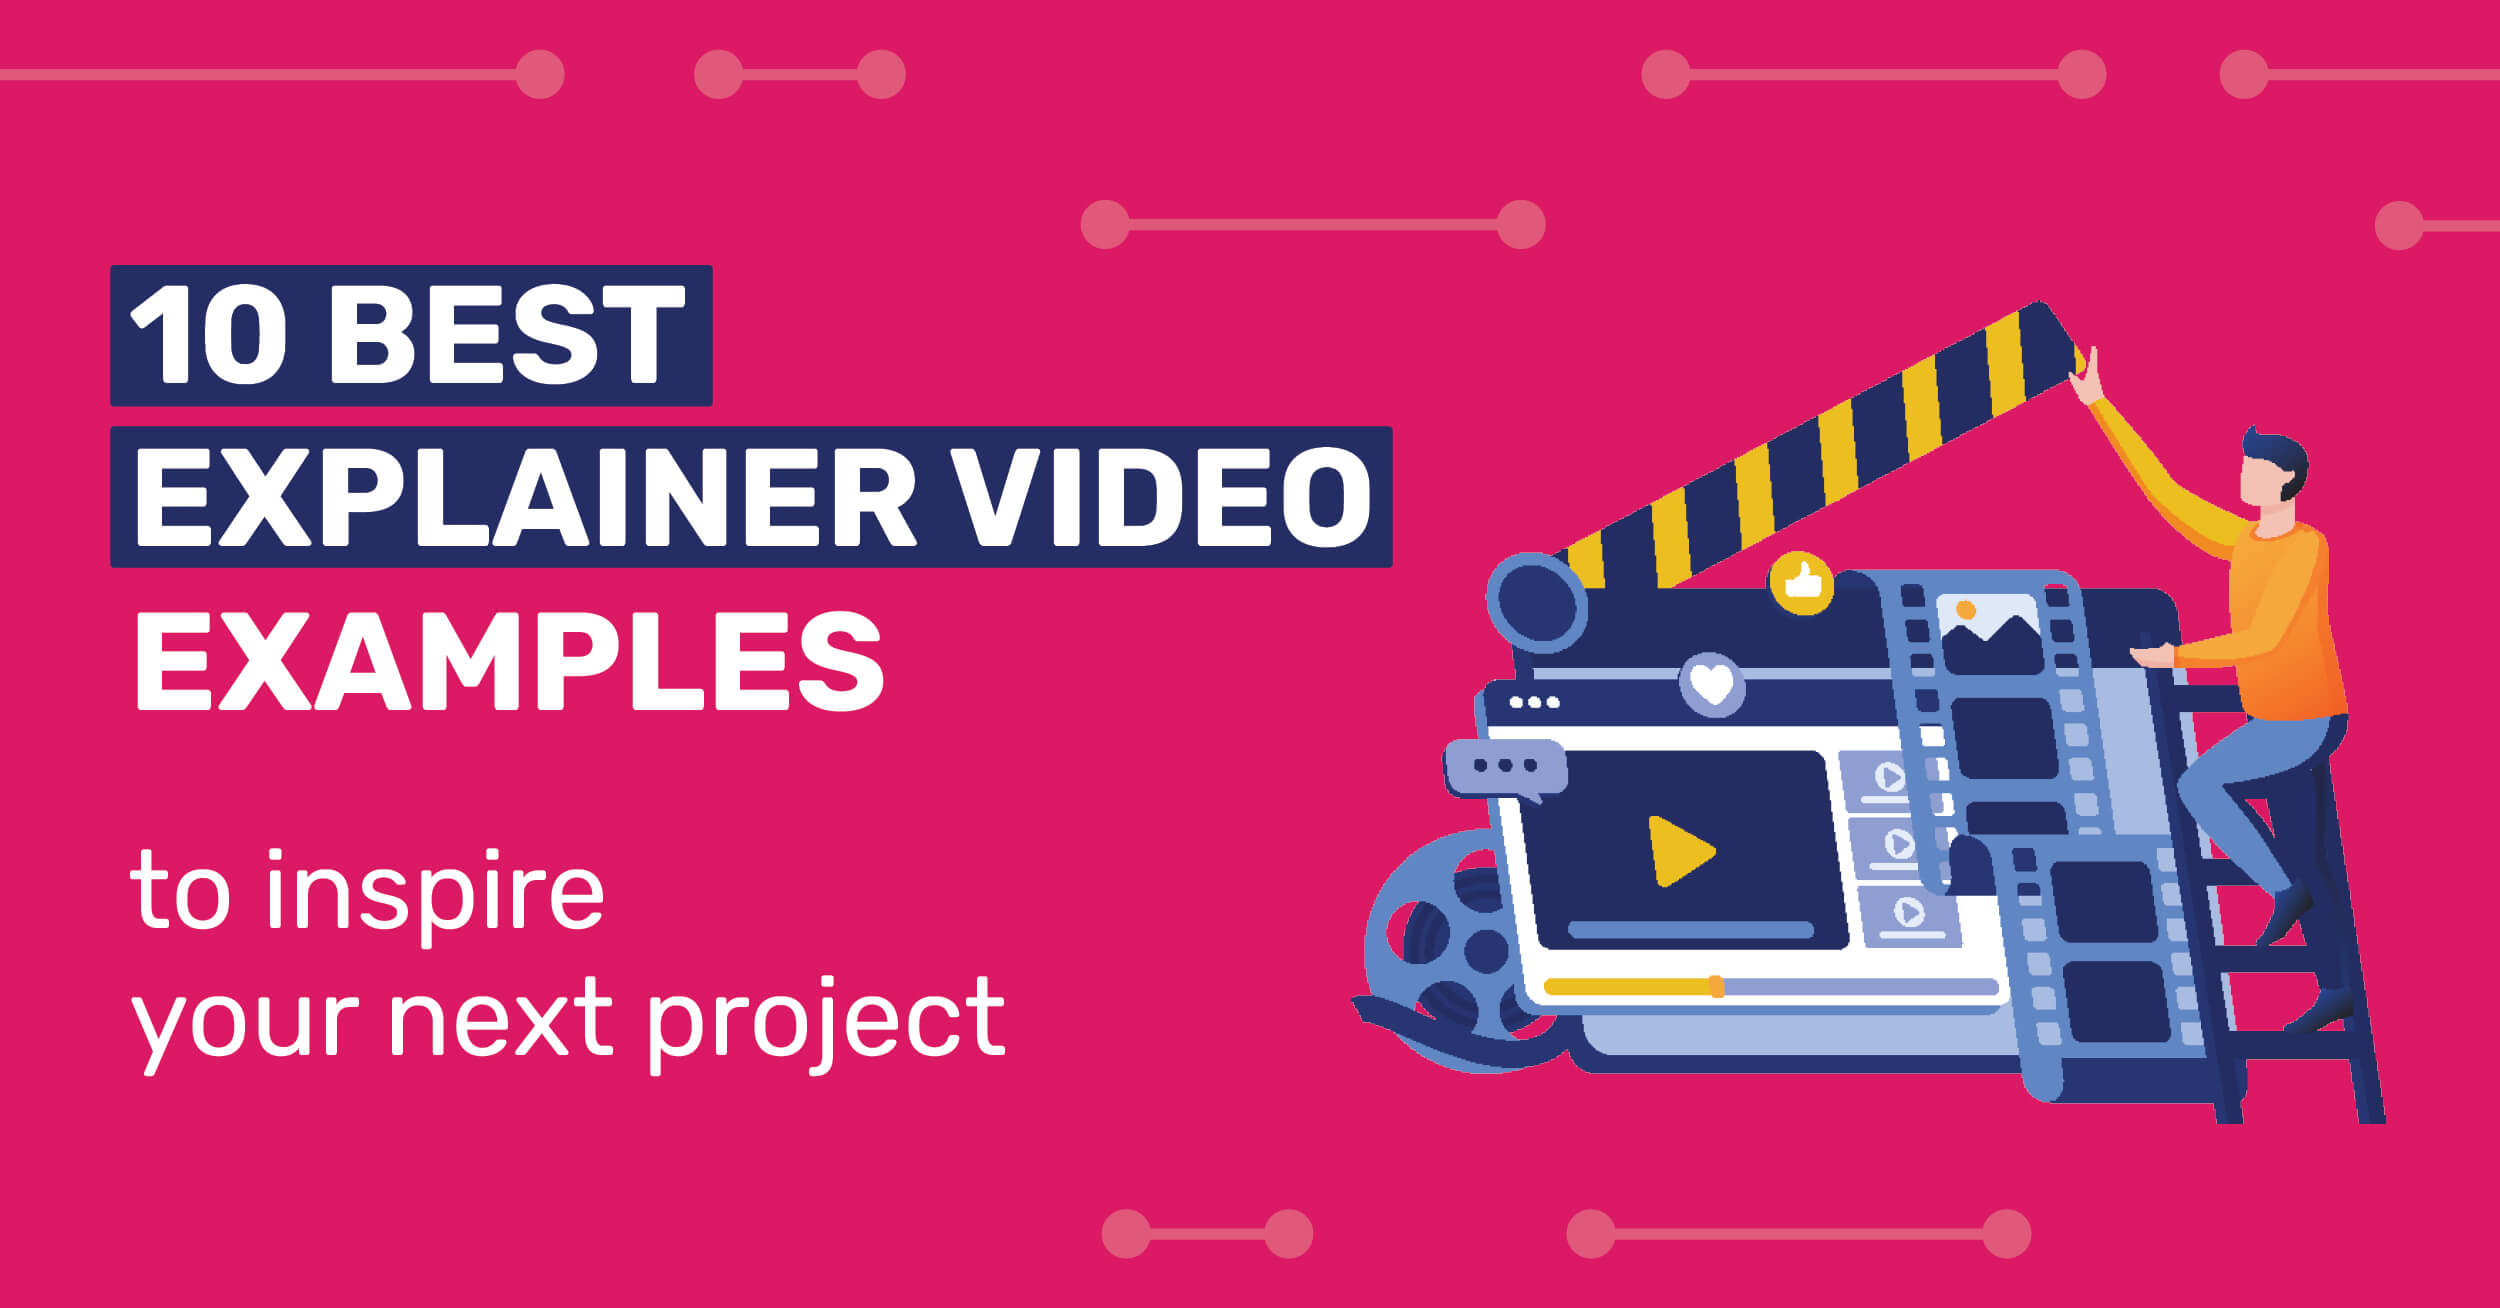 Examples of the best explainer videos online